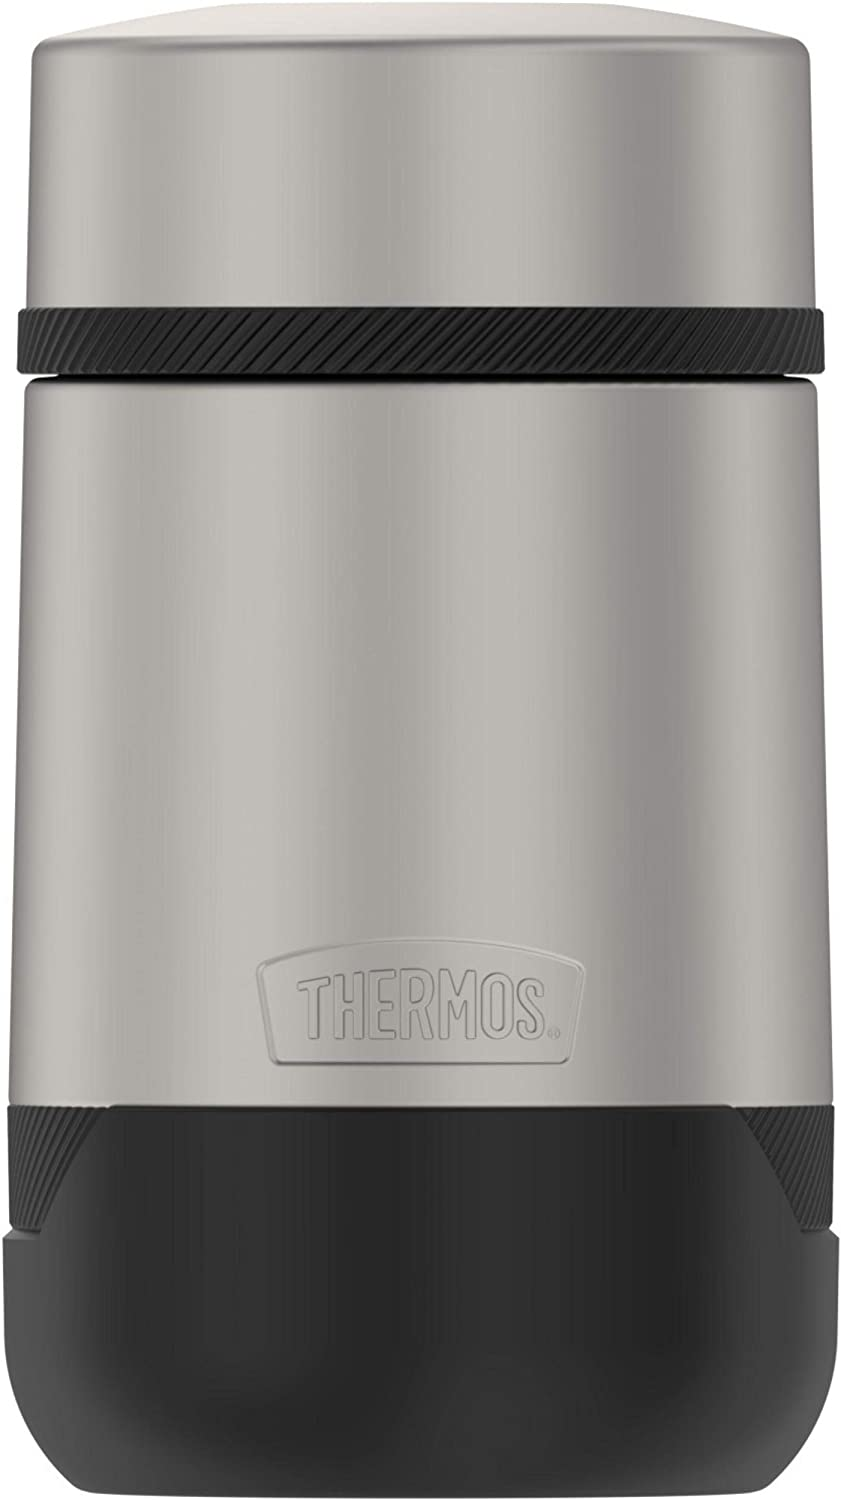 Guardian Collection by THERMOS Stainless Super beauty Max 74% OFF product restock quality top Jar 18 Steel Food Ounce